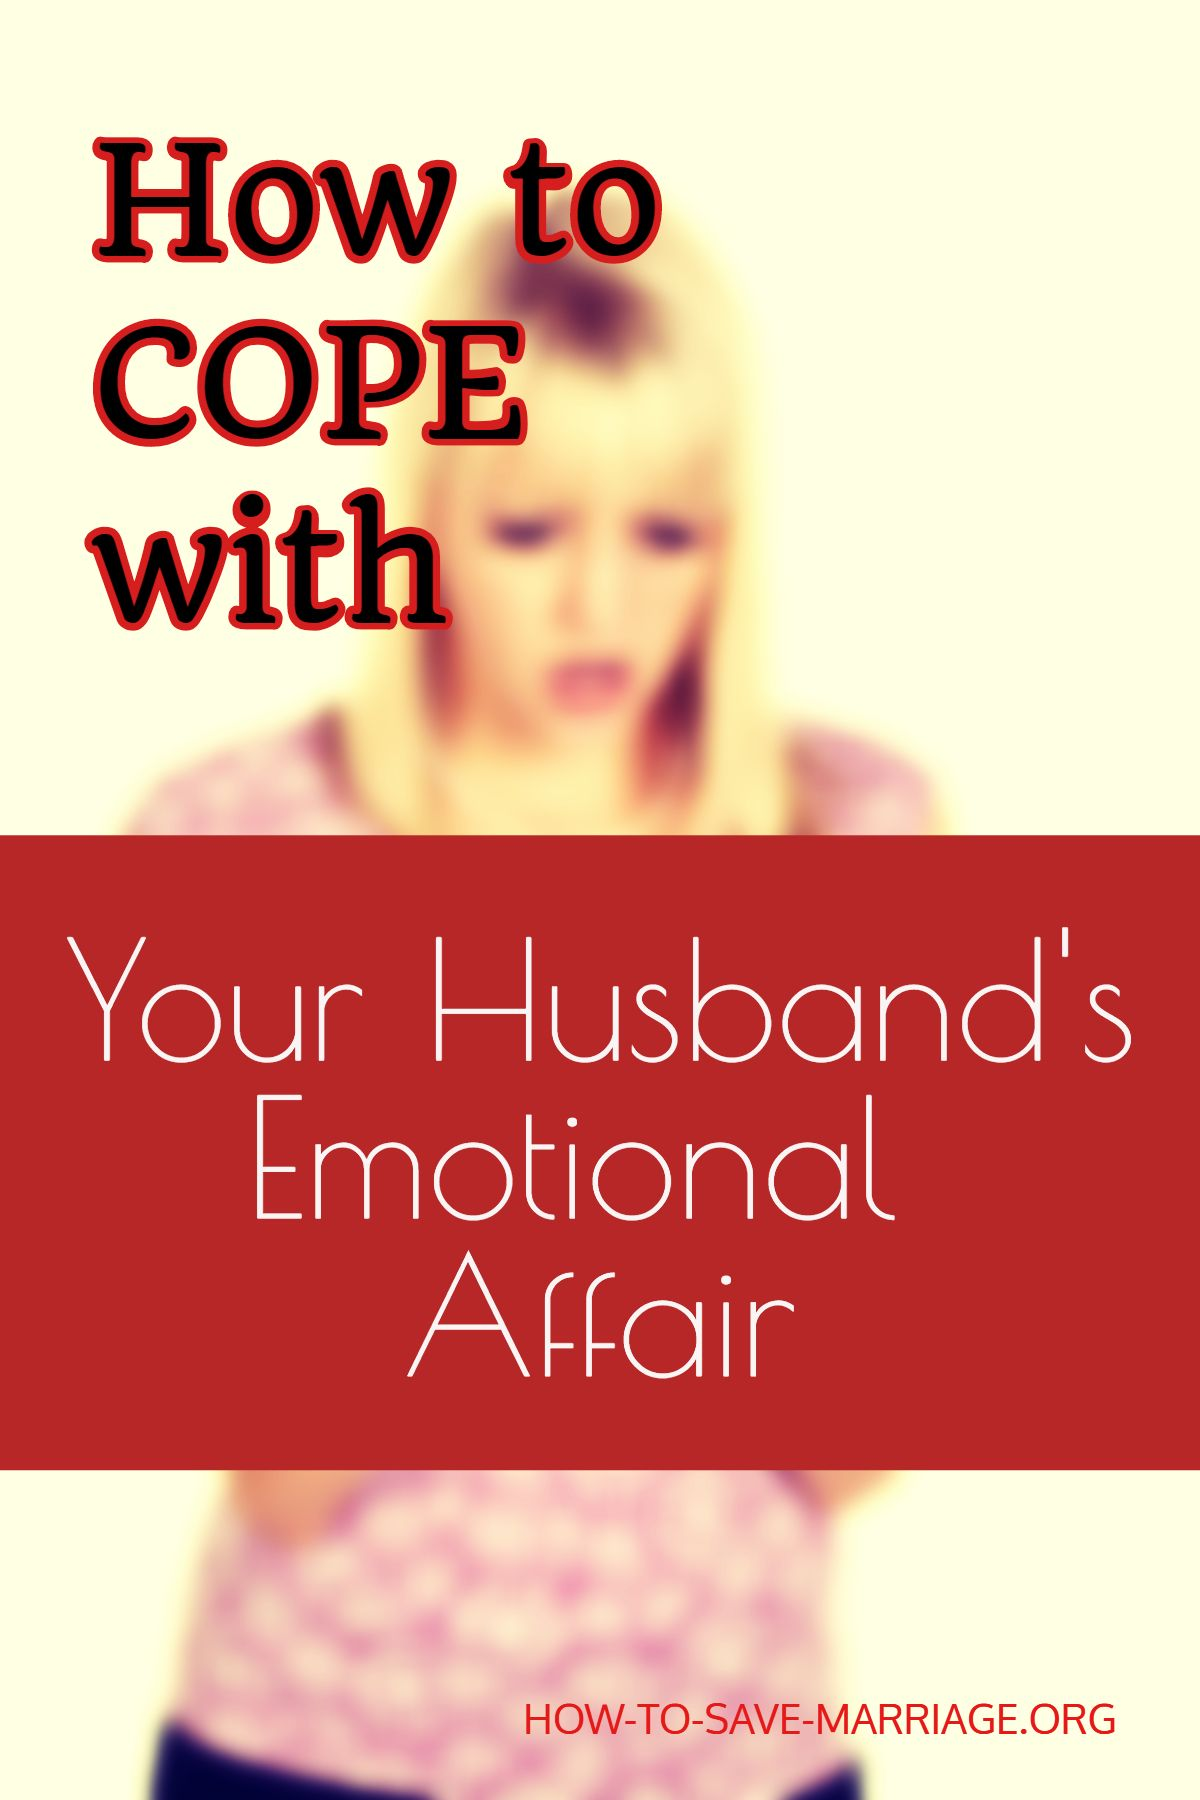 How to cope with an affair